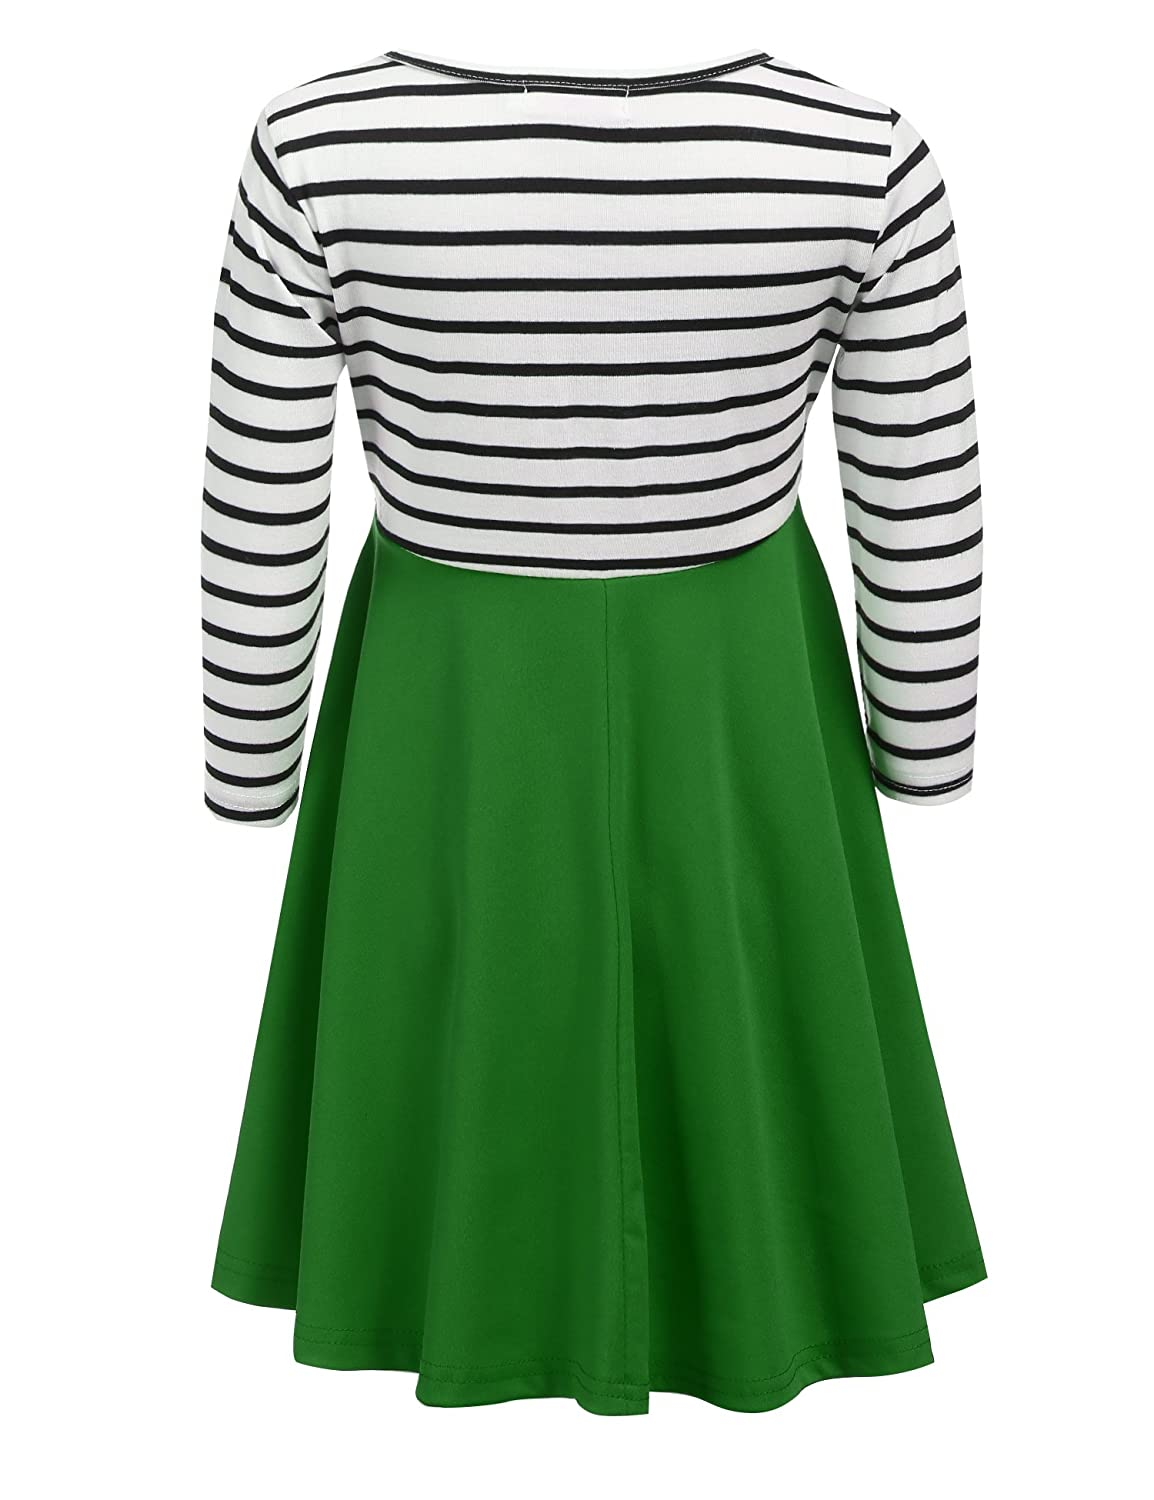 Amazon.com: Arshiner Kids Girls Long Sleeve A-line Striped/Froal ...